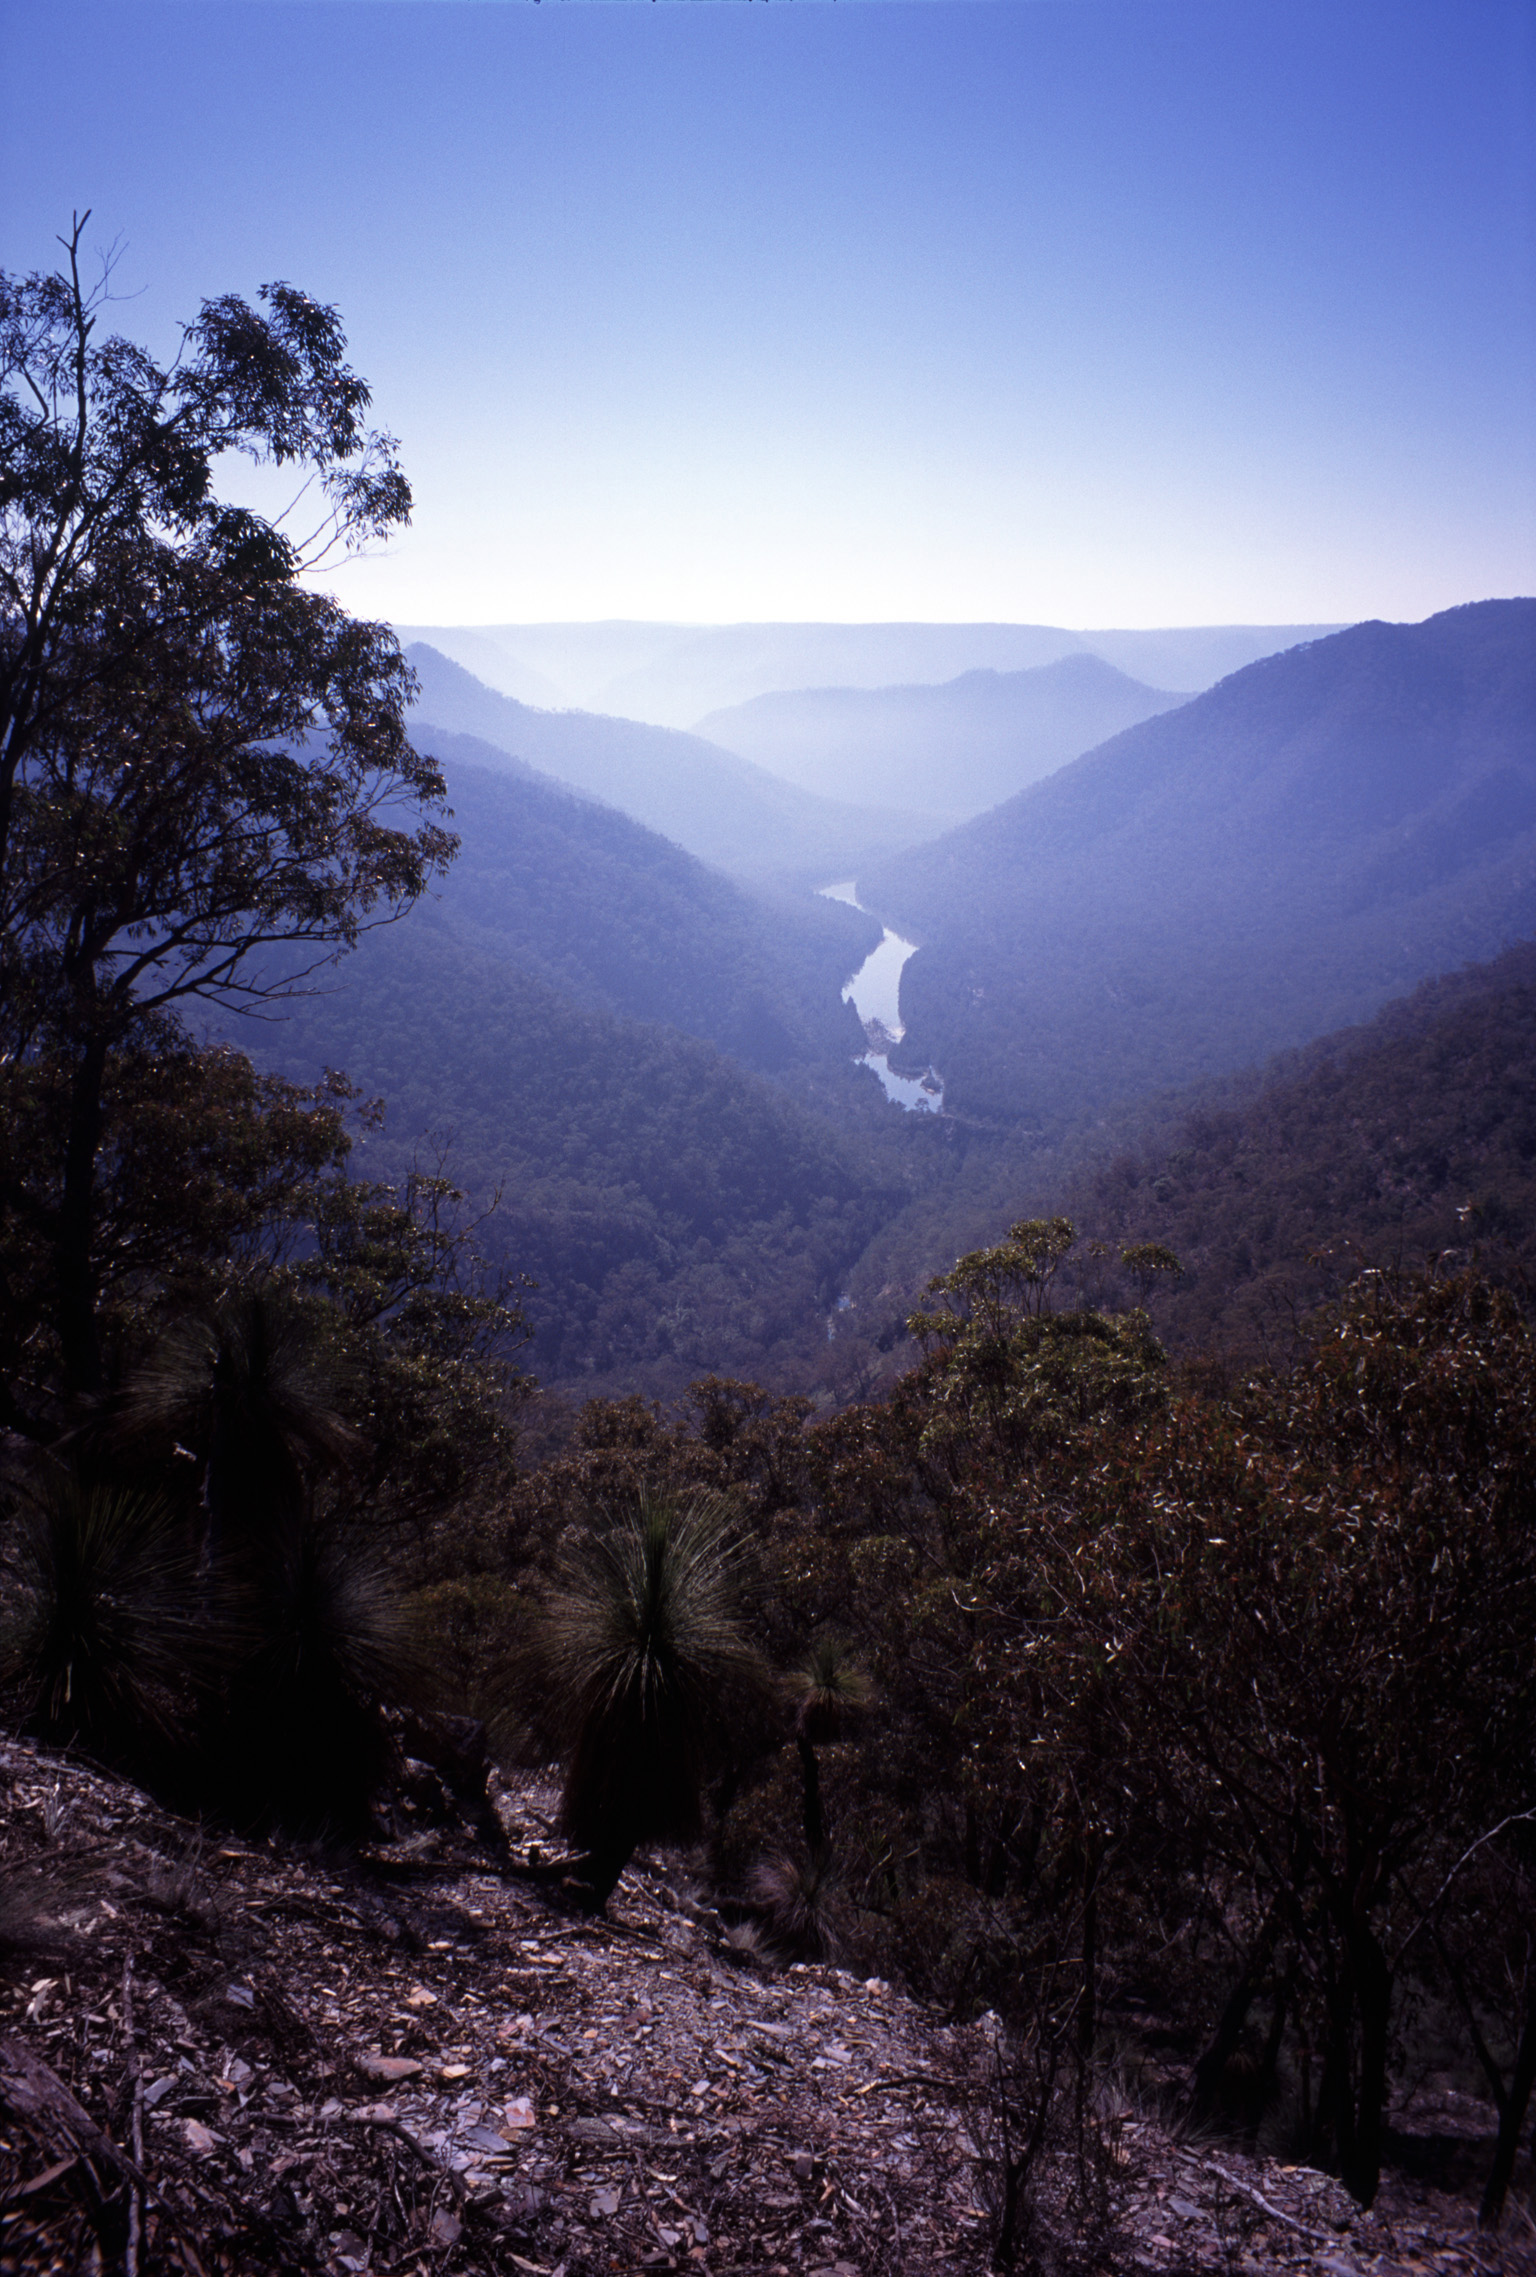 Scenic Landscape of Shoalhaven River Winding Through Valley in Bungonia State Recreation Area, New South Wales, Australia